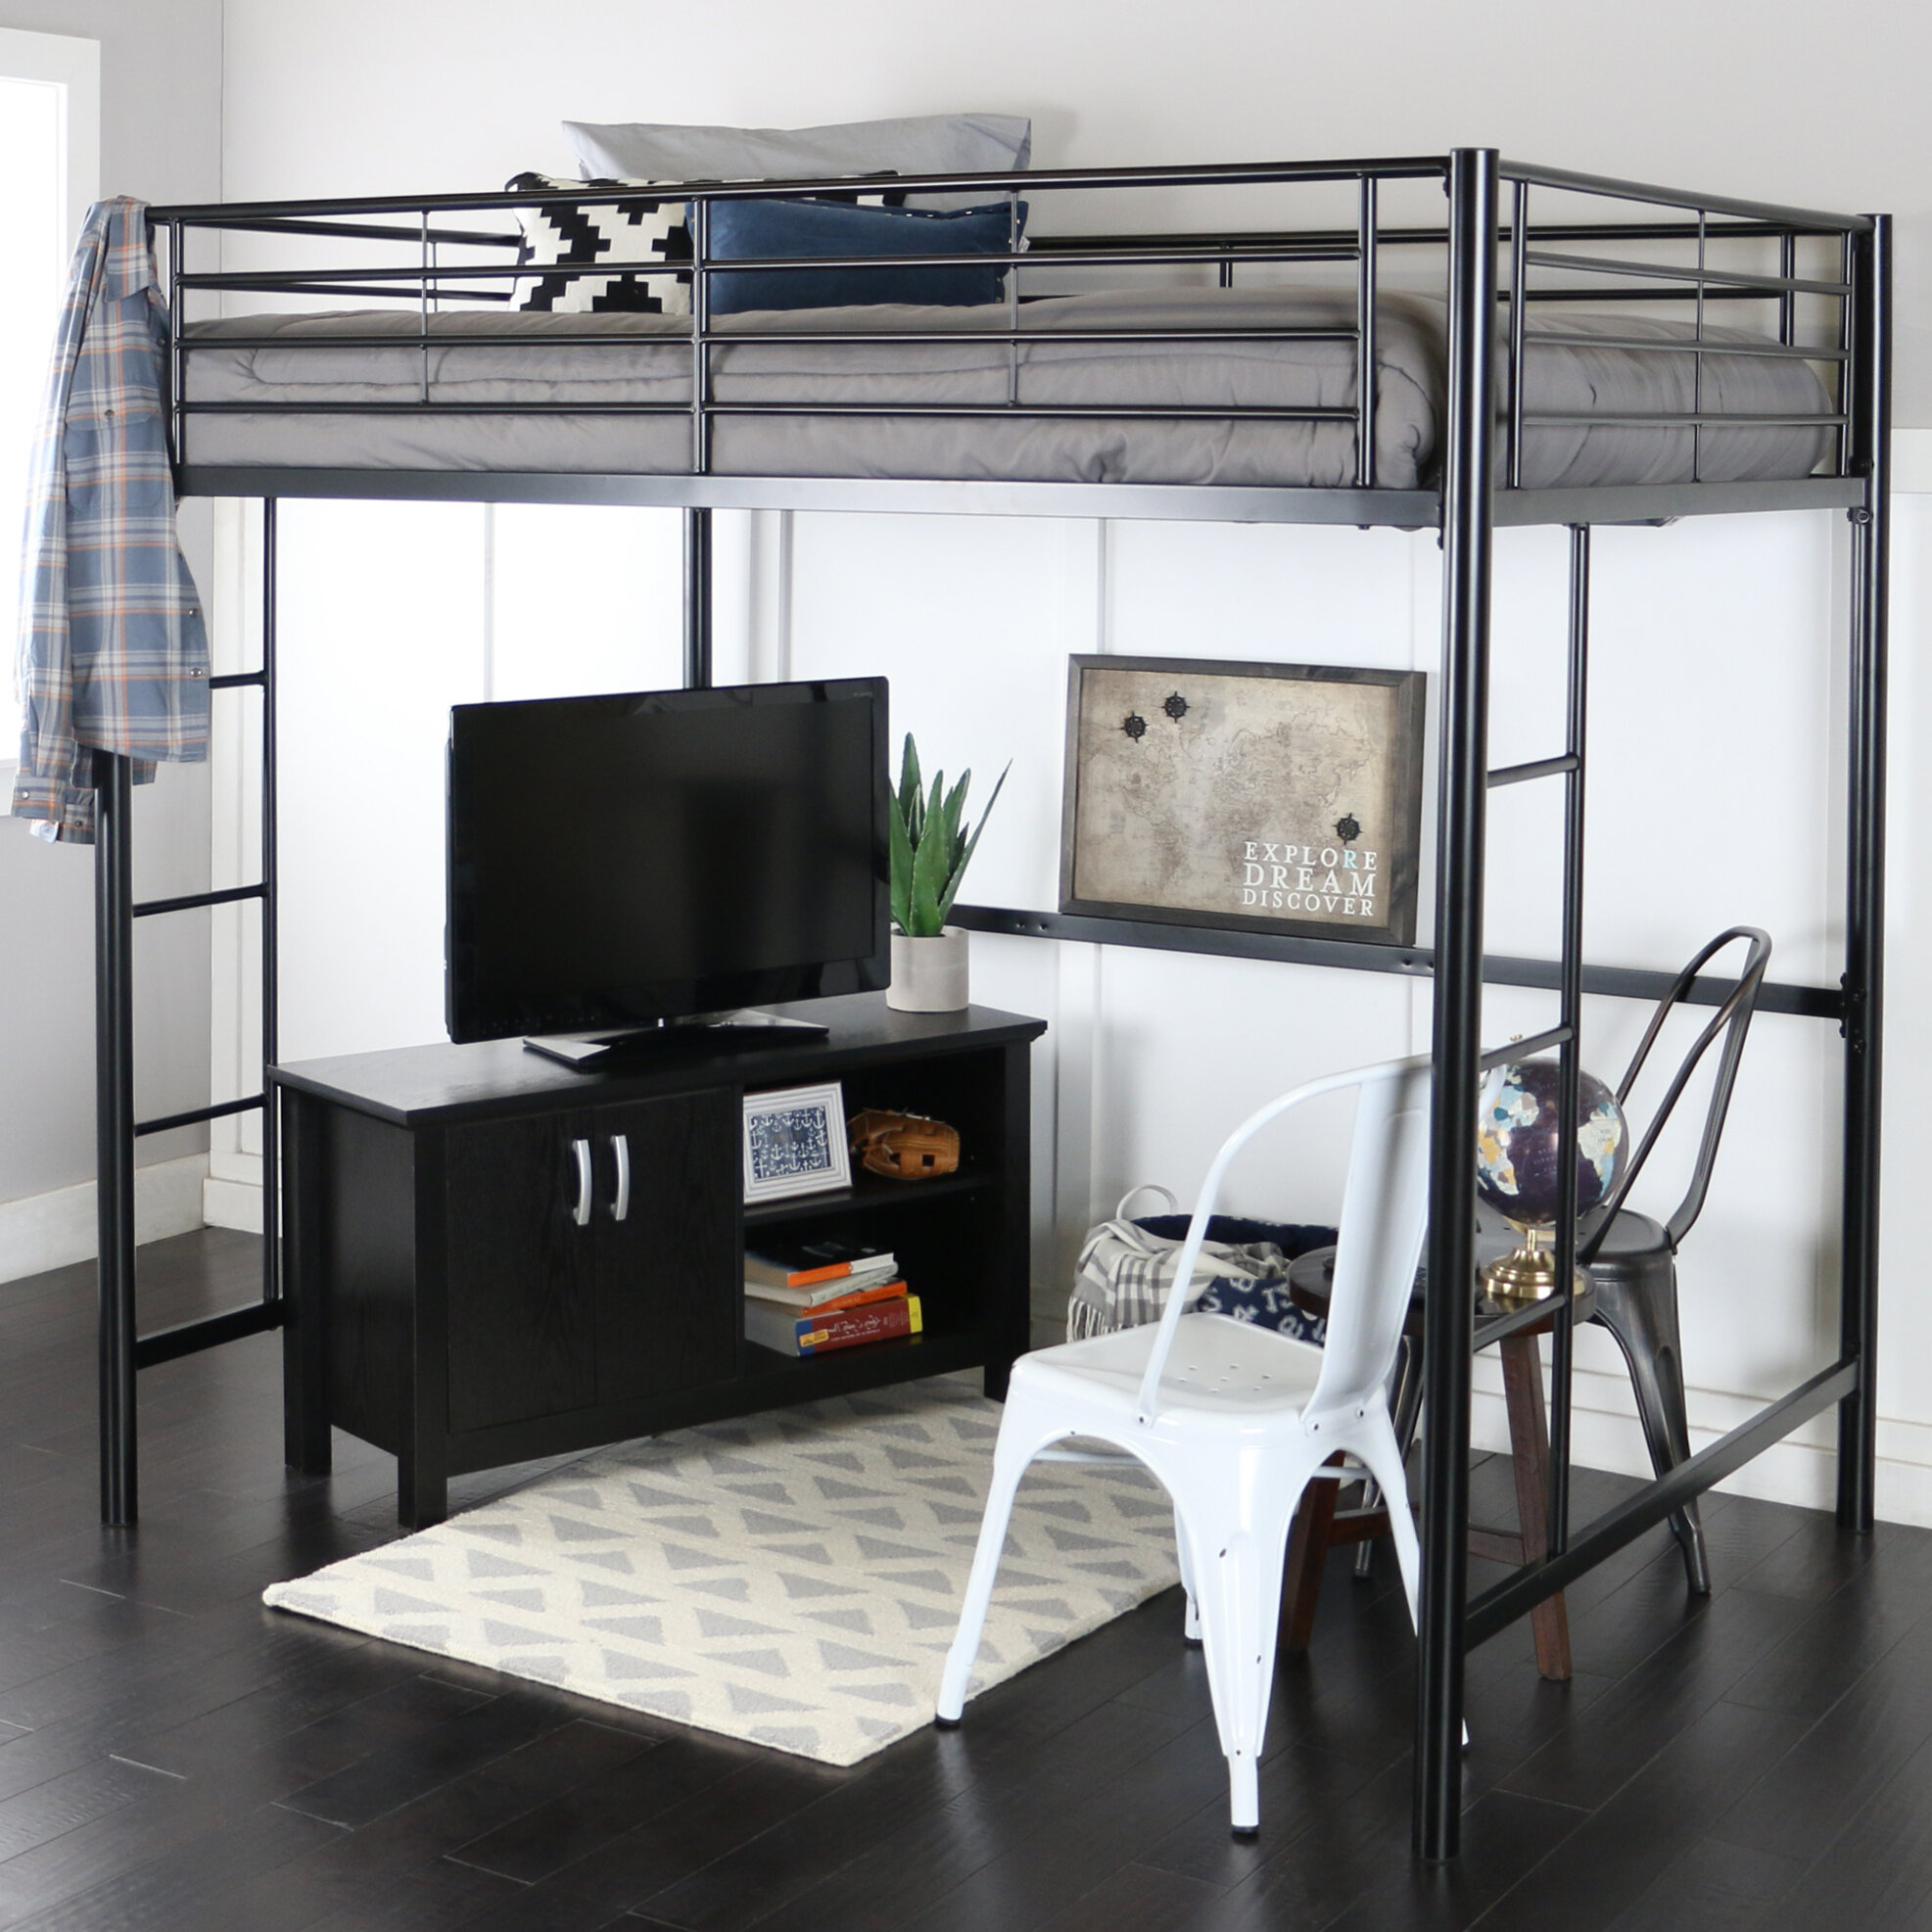 espresso eng children twin compact airlie products beds dorel loft design featuring brighten sourceimage living full s this with a details the bed your teens room bunk up over